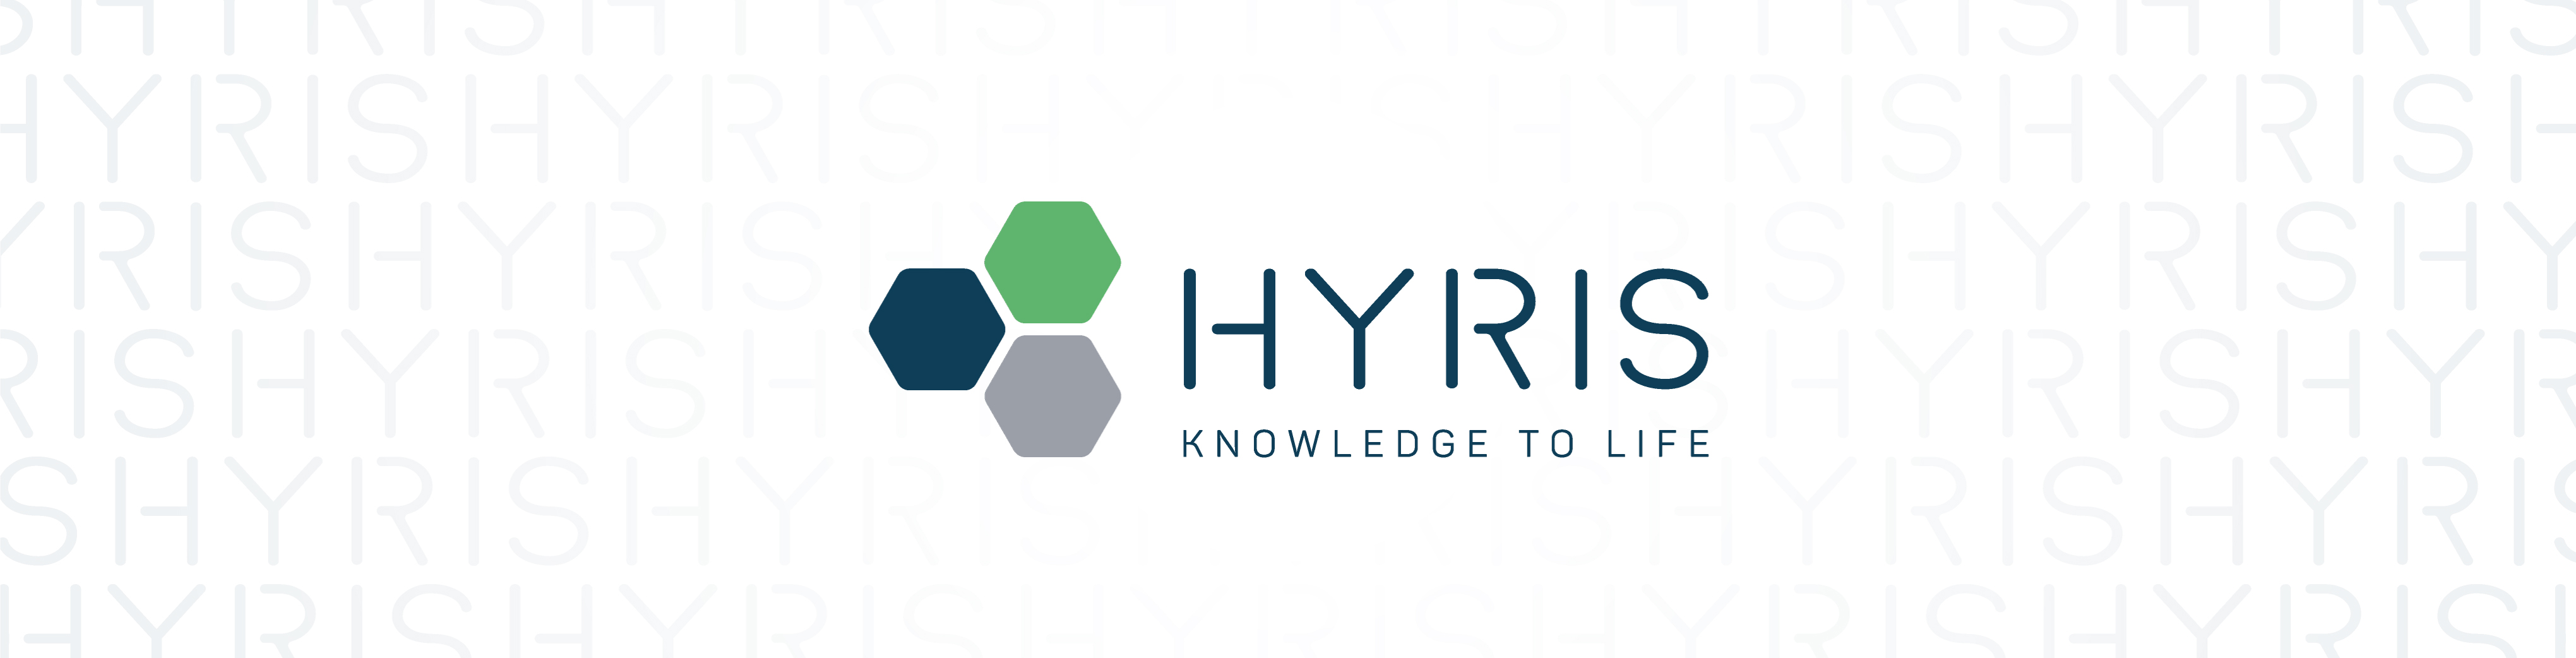 Hyris presents its new Brand, supporting its fast growth worldwide.